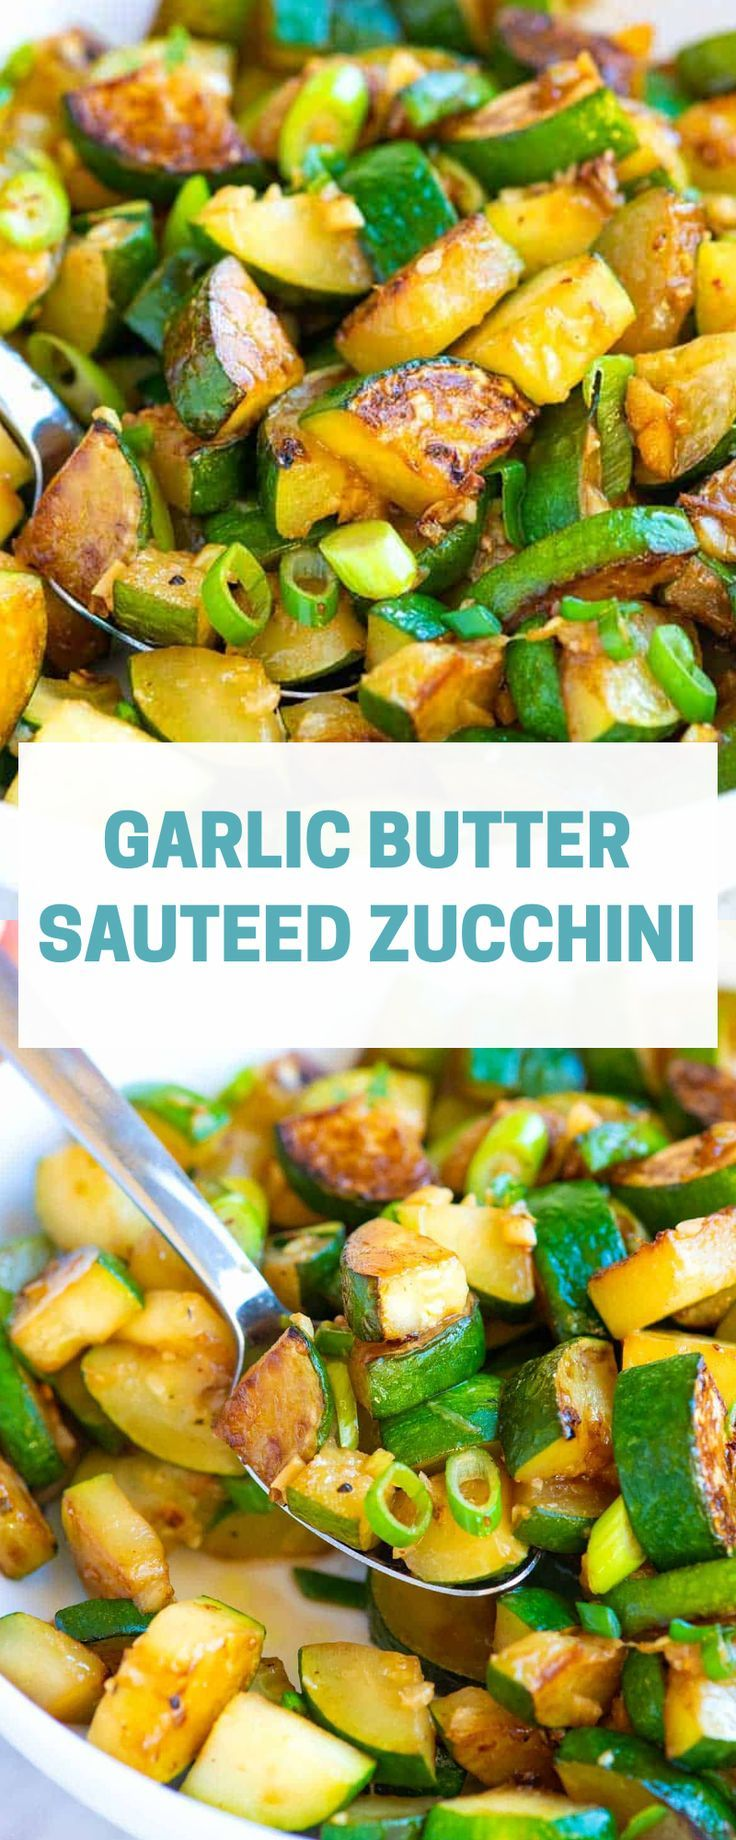 Garlic Butter Sauteed Zucchini images